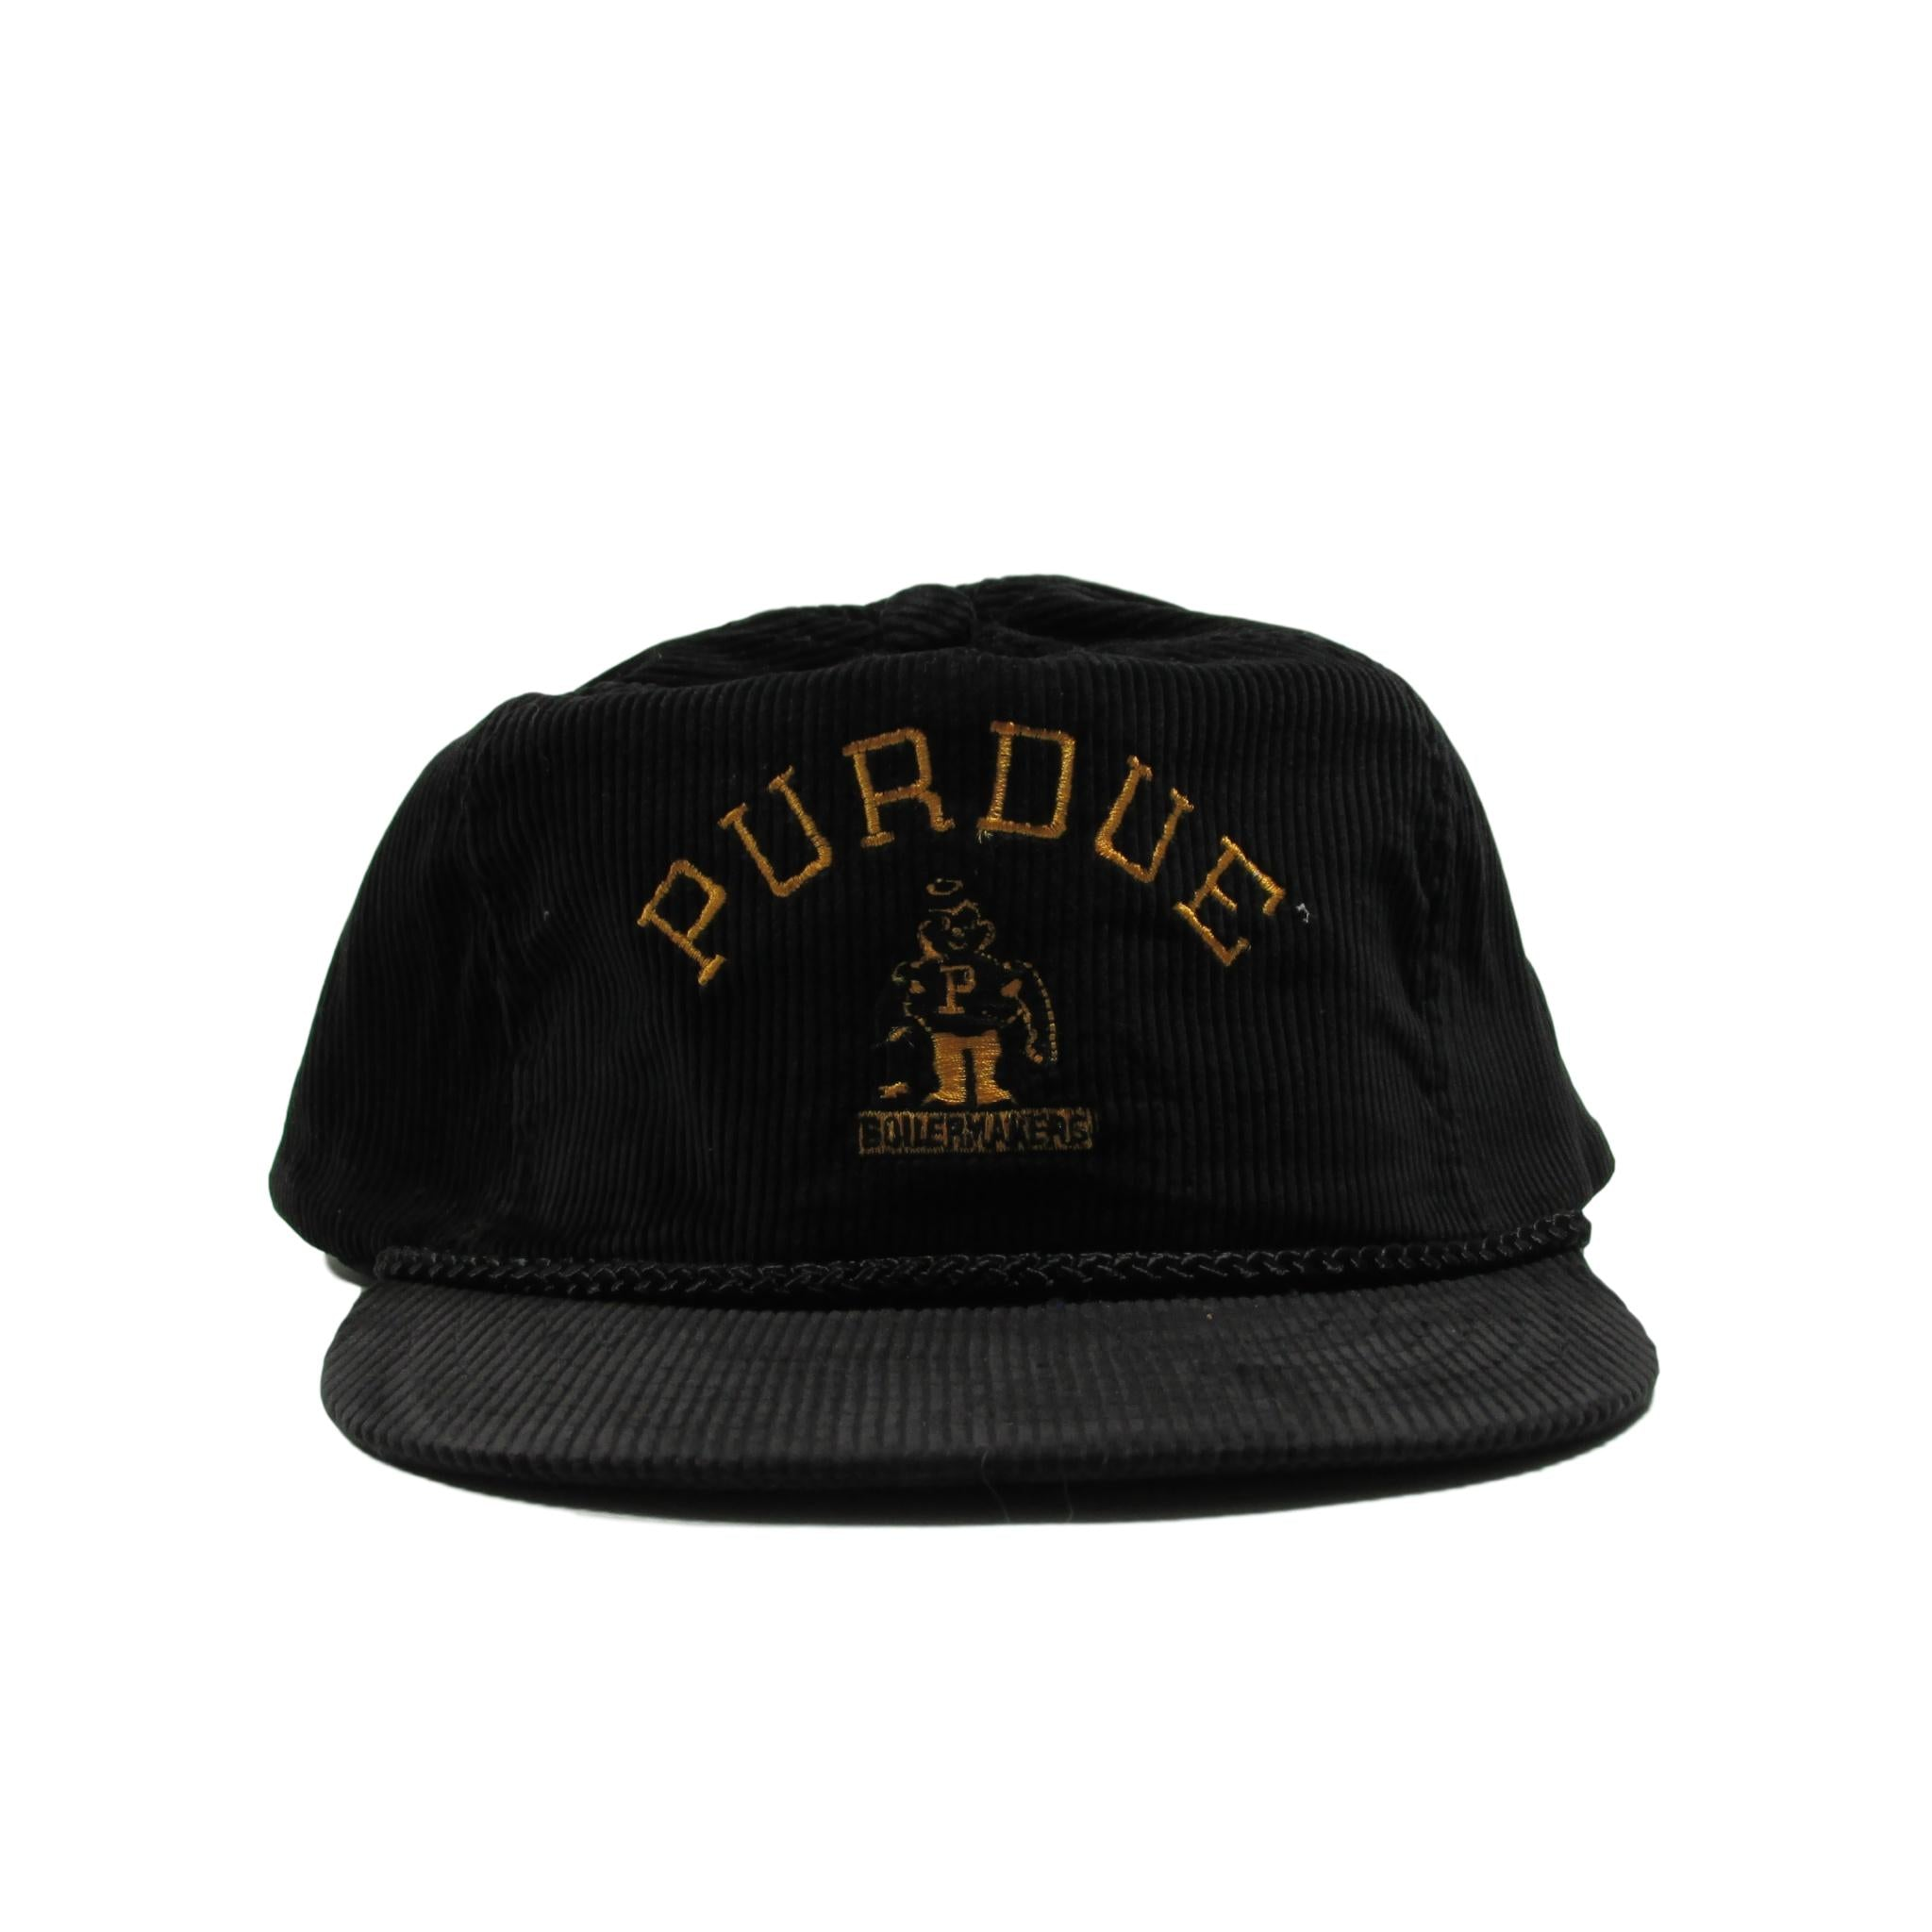 Purdue Boilermakers College Football NCAA Corduroy Twill Snapback Hat